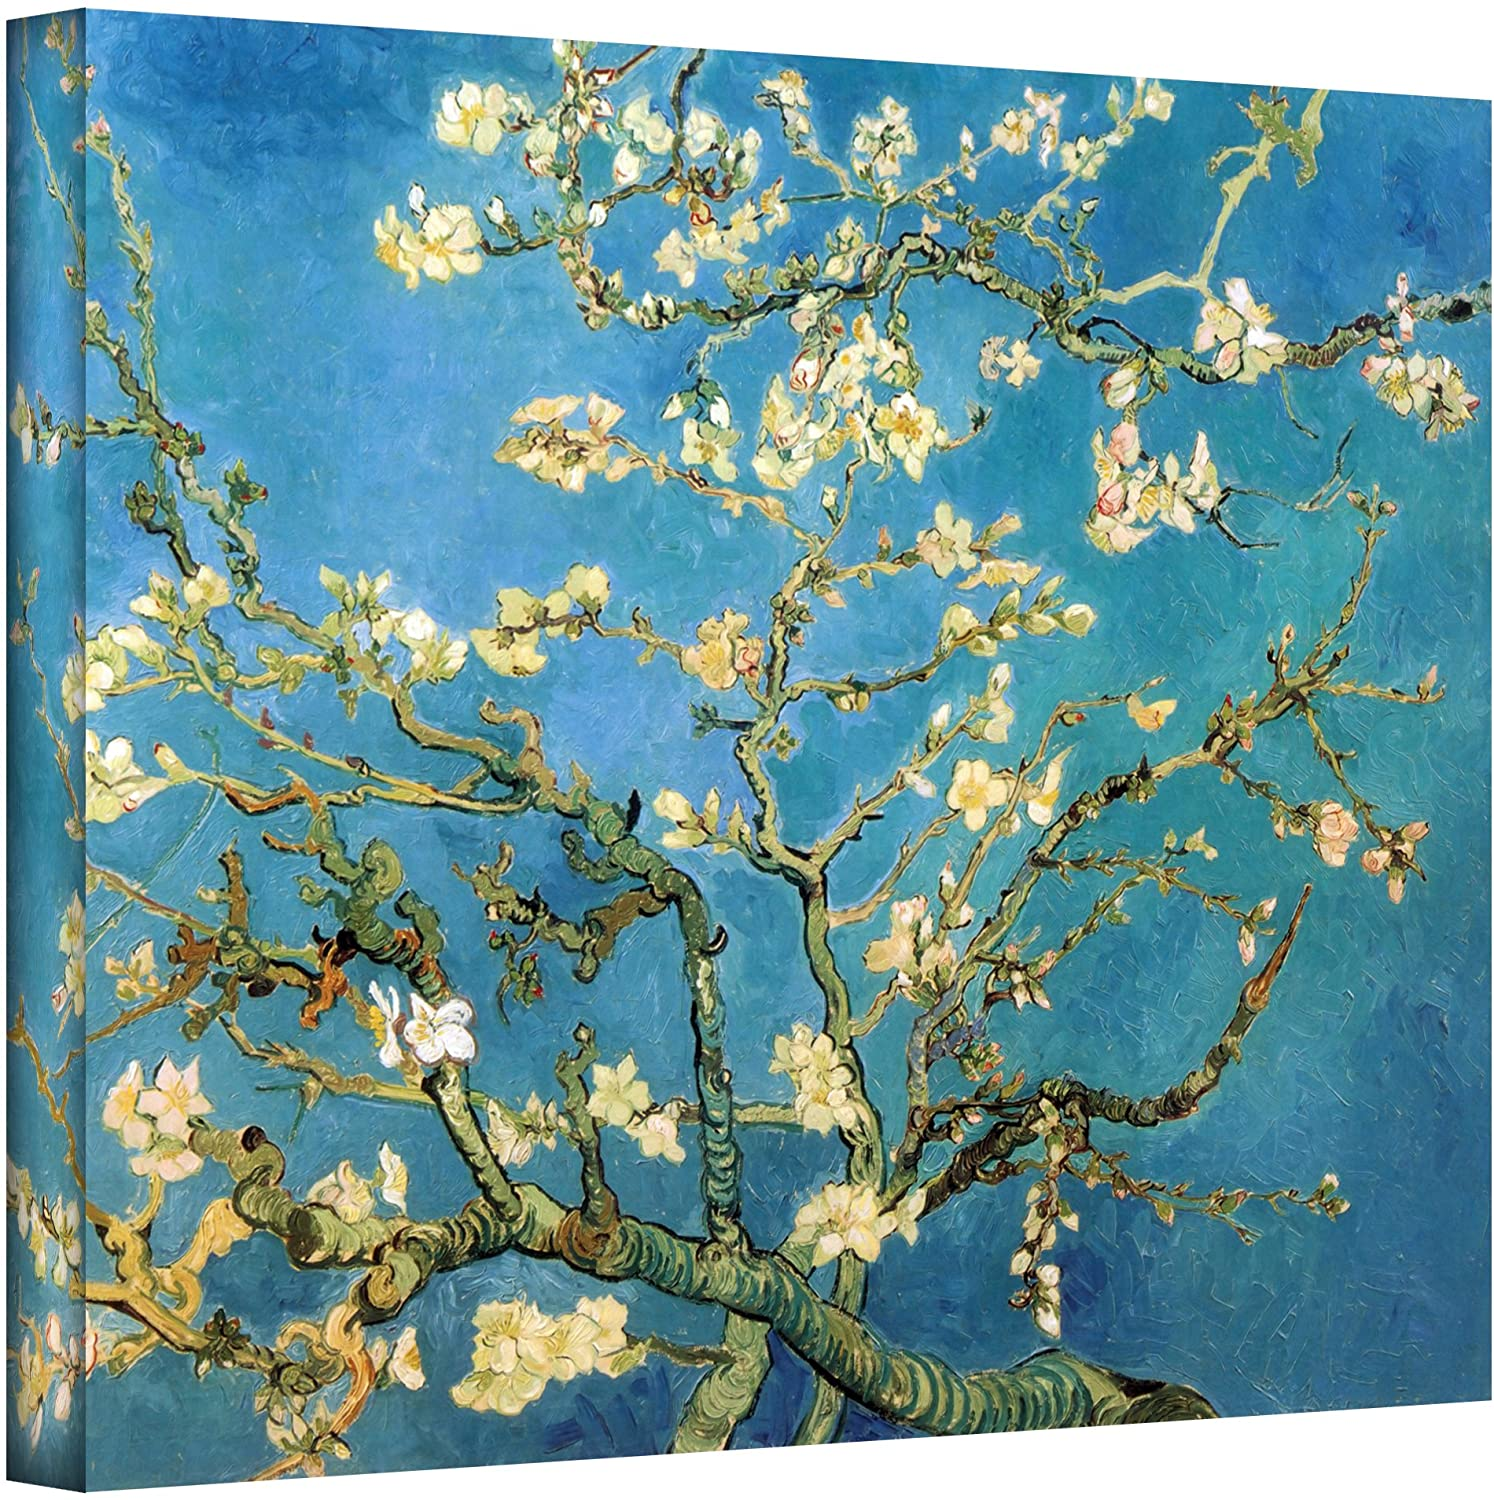 Artwall Almond Blossom By Vincent Van Gogh Gallery Wrapped Canvas Art 36 By 48 Inch Oil Paintings Posters Prints